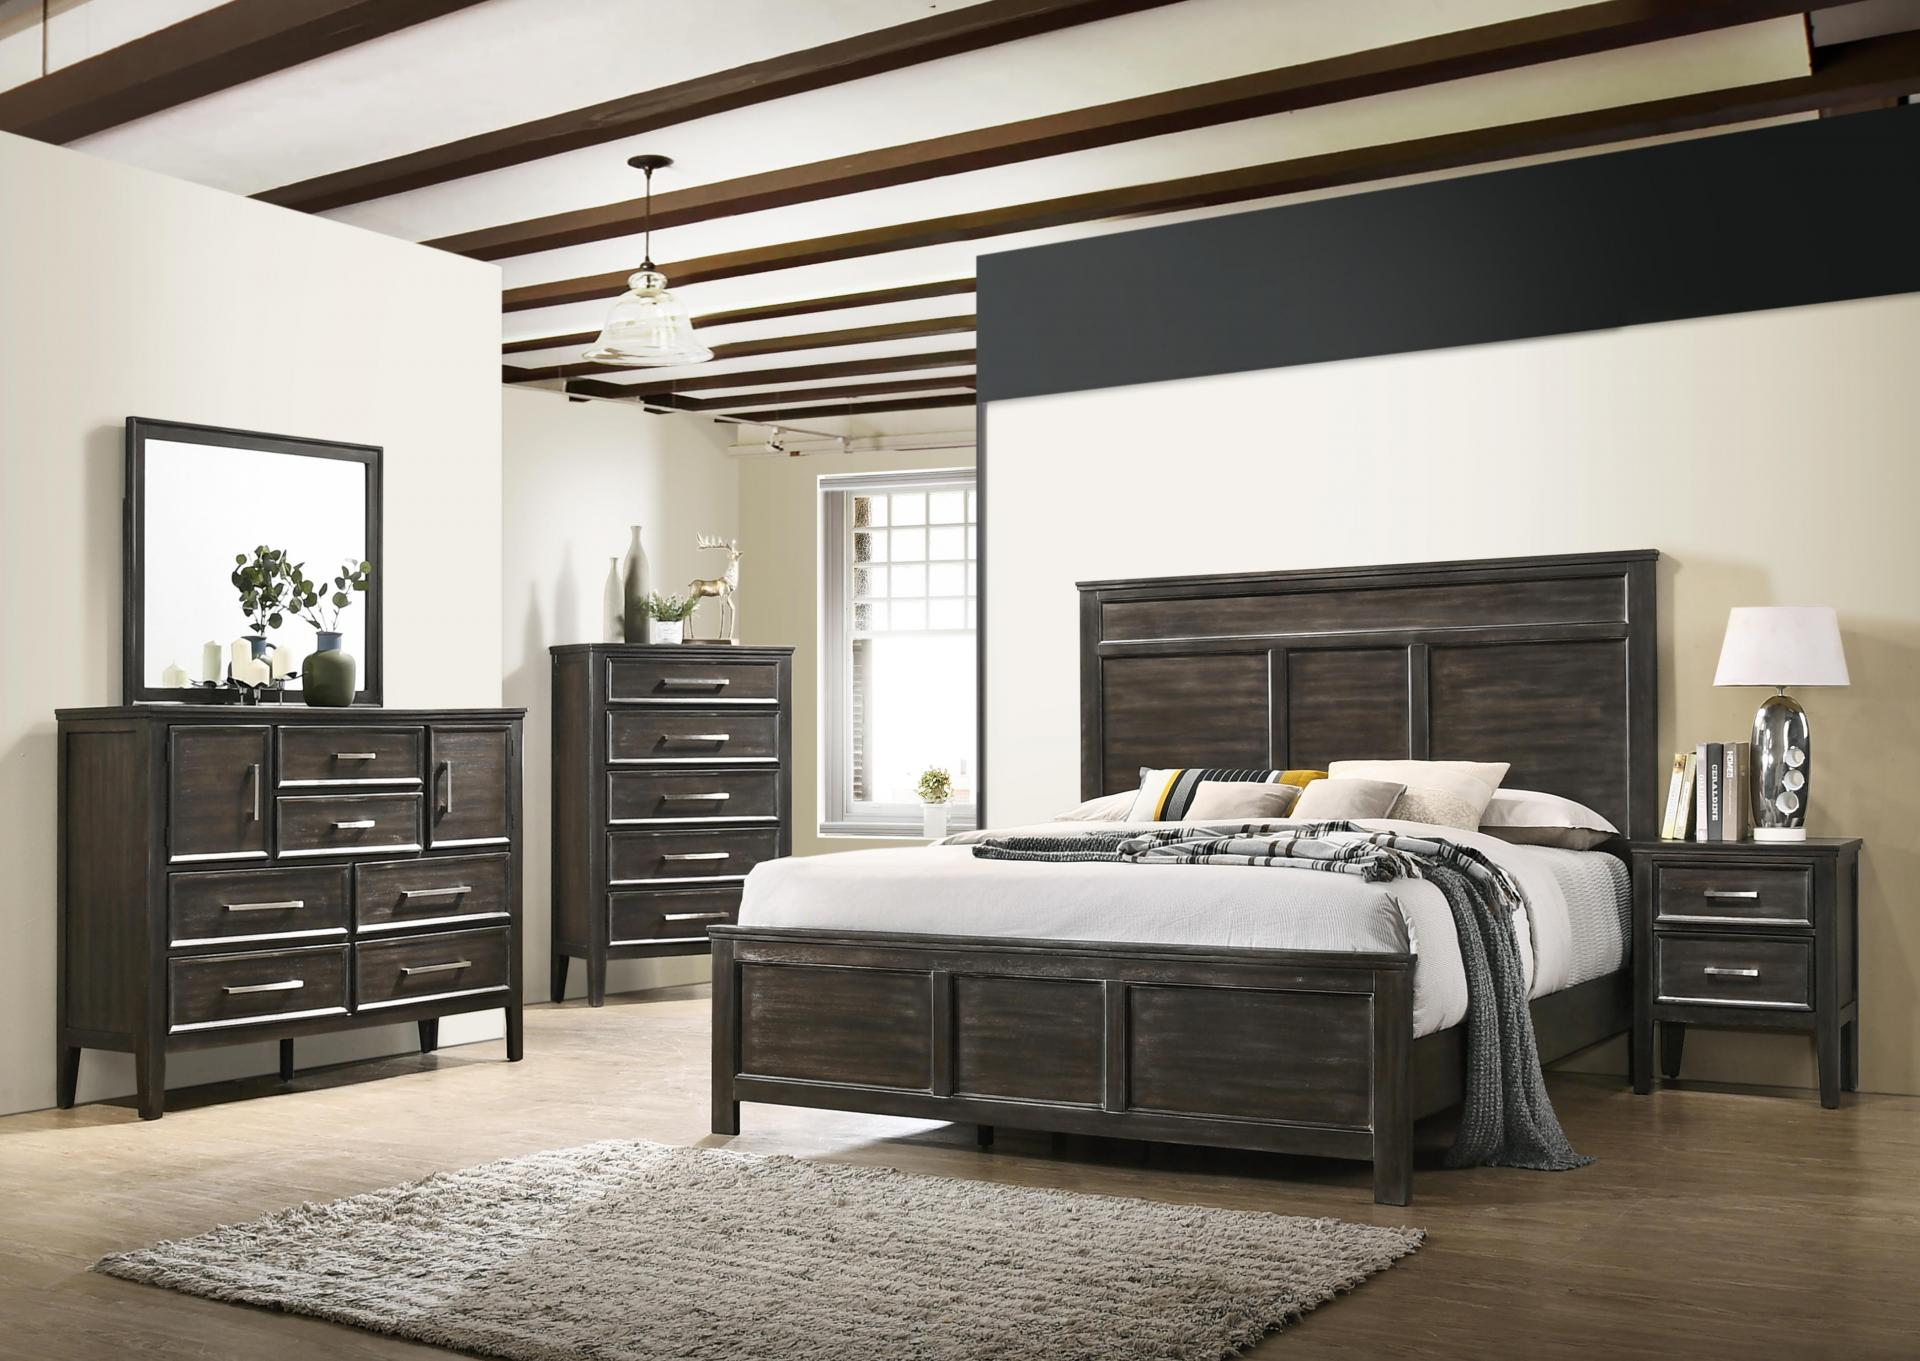 Andover Queen Bed Dresser Mirror Chest And Night Stand,Harlem In-Store